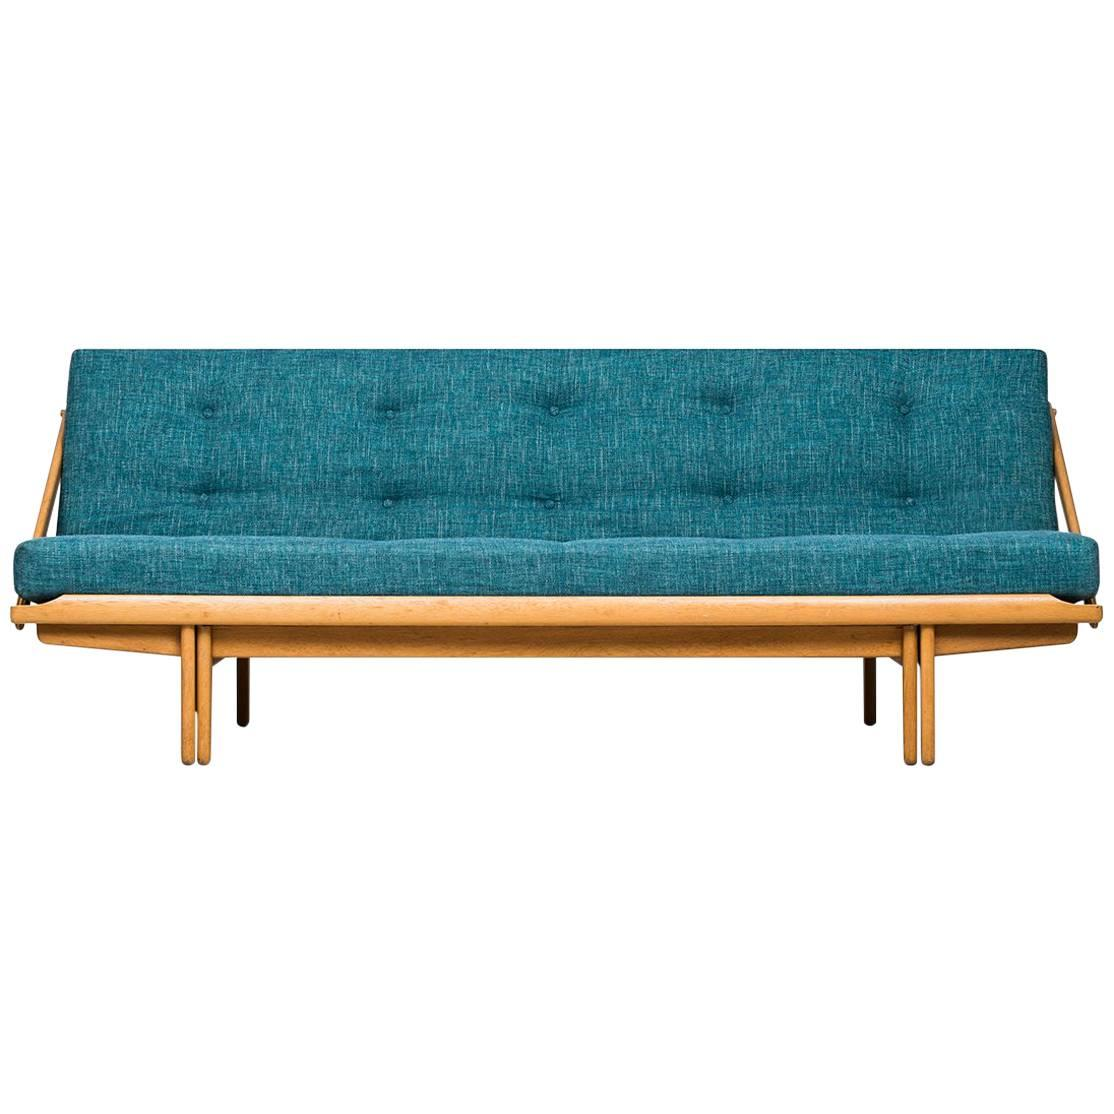 Poul Volther Sofa or Daybed Model Diva / 981 by Gemla in Sweden